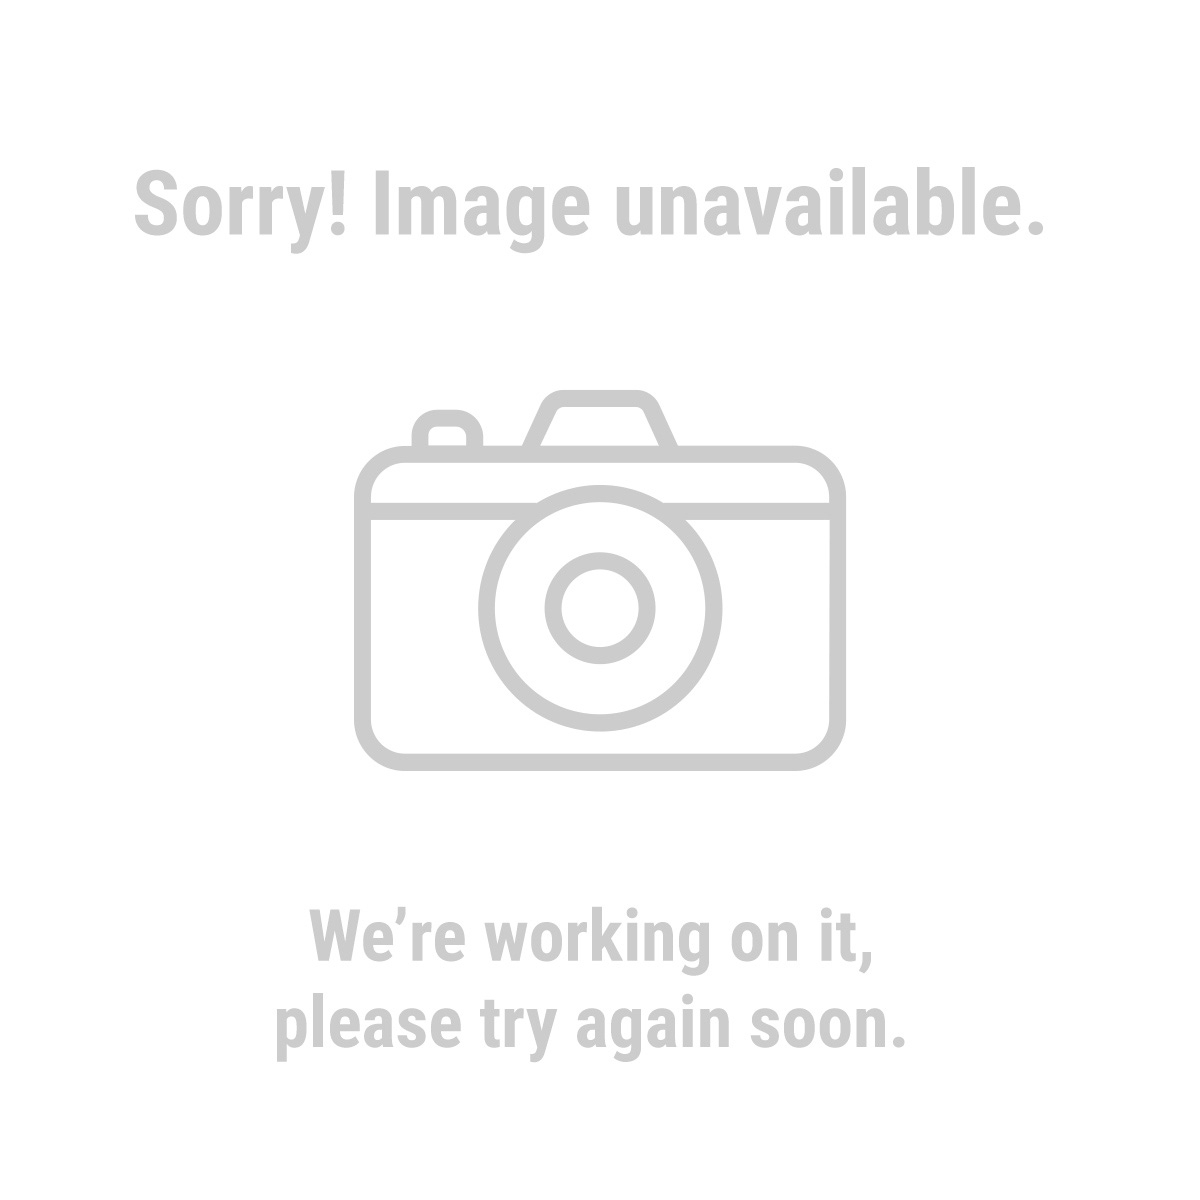 Cen-Tech® 69465 Infrared Thermometer with Laser Targeting, Non-Contact